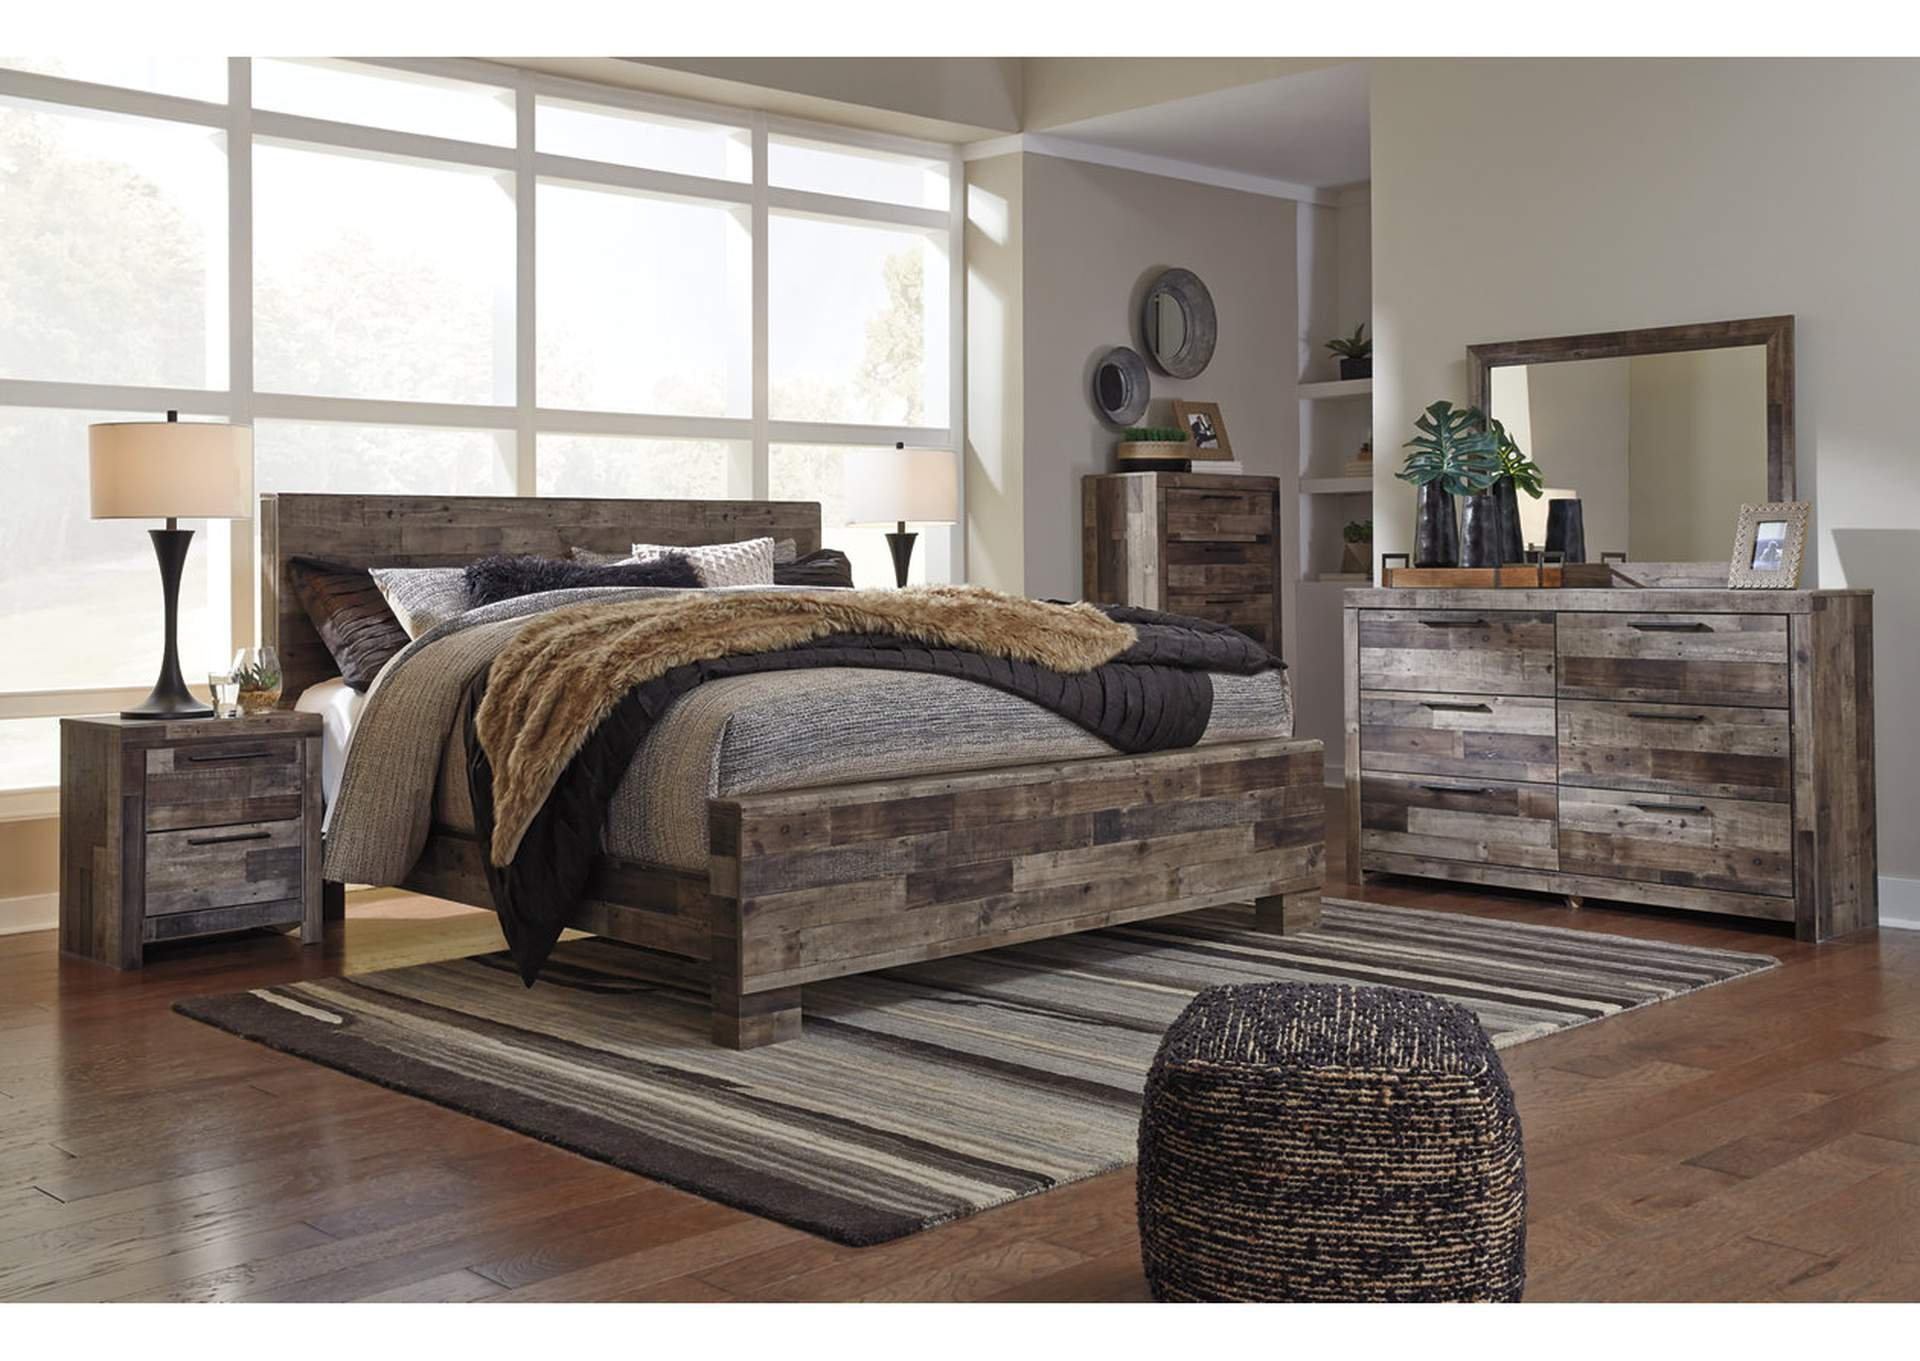 Derekson King Panel Bed W Dresser And Mirror Ashley Furniture Homestore Independently Owned And Operated By Best Furn Appliances I